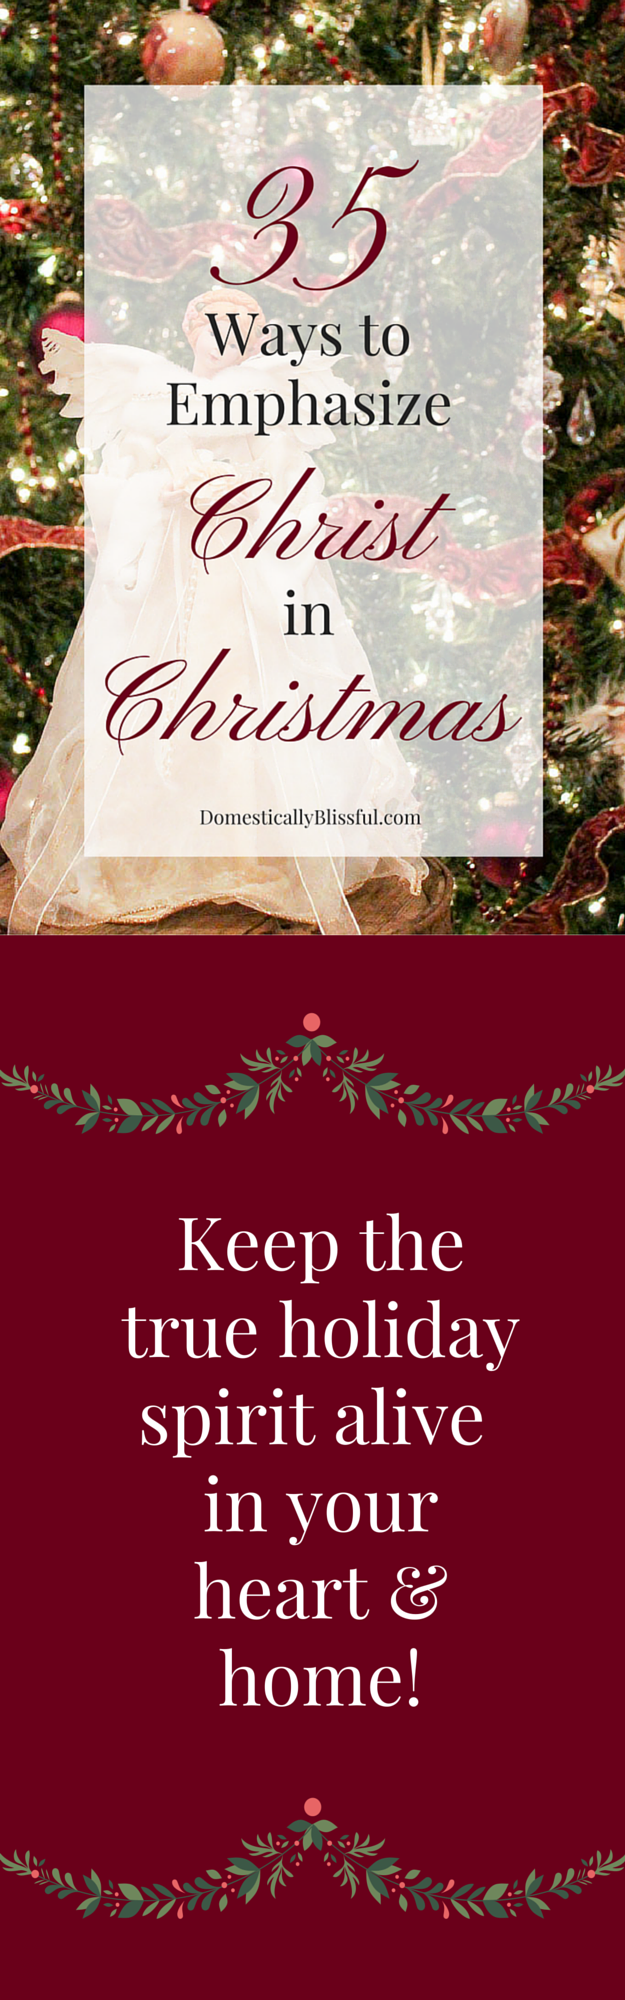 35 Ways to Emphasize Christ in Christmas in order to keep the true holiday spirit alive in your heart & home!